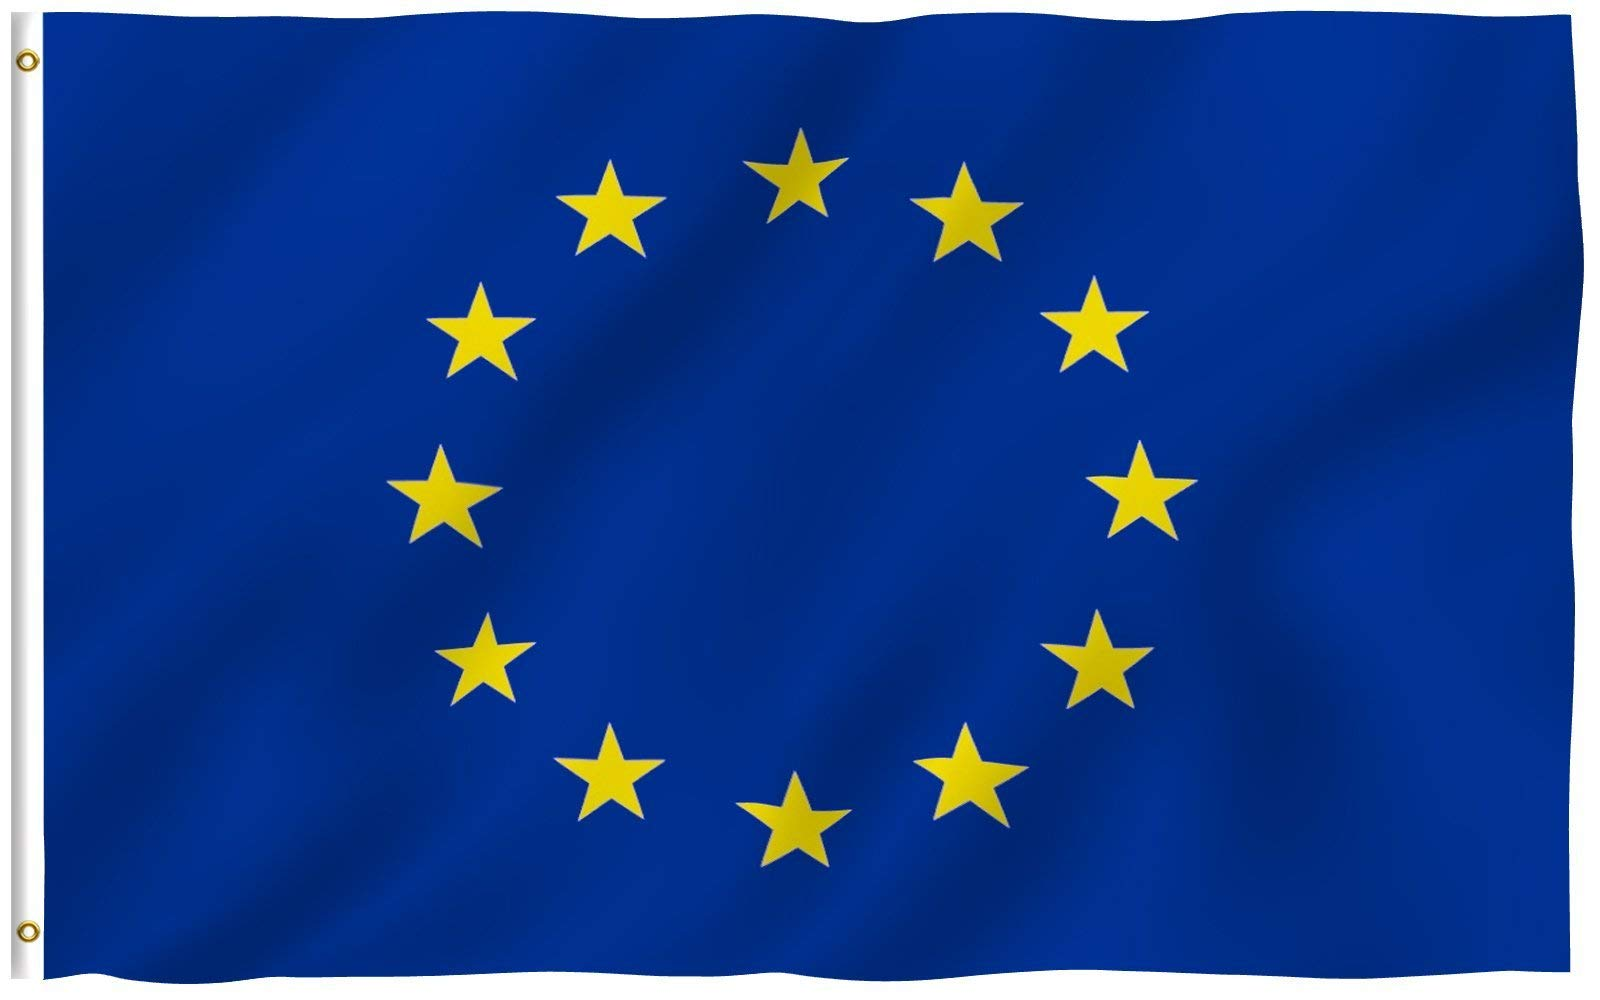 Anley Fly Breeze 3x5 Foot European Union Flag - Vivid Color and Fade Proof - Canvas Header and Double Stitched - EU Flags Polyester with Brass Grommets 3 X 5 Ft